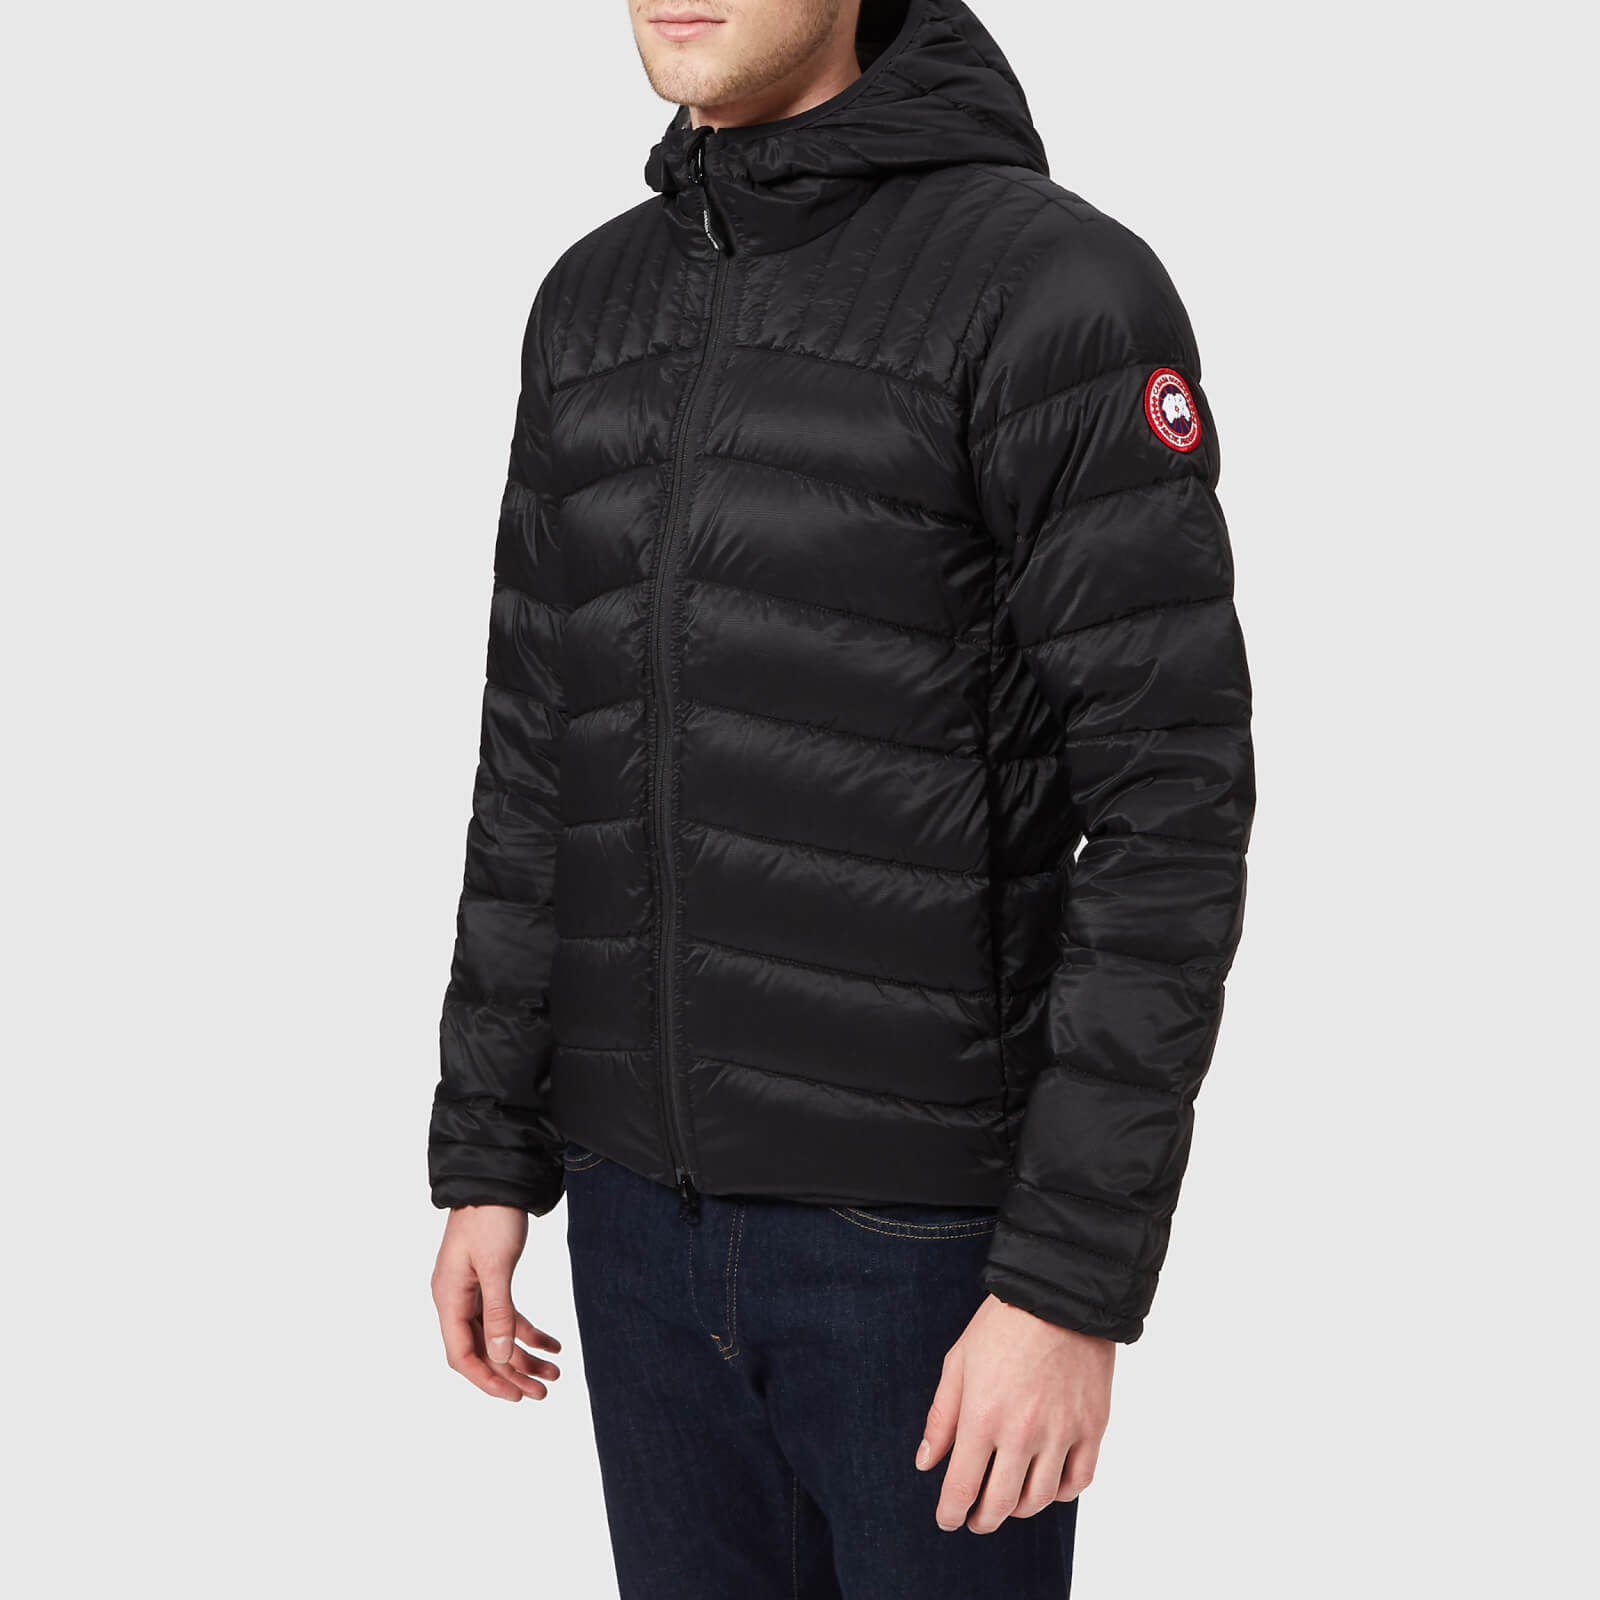 a4a258f5affa Canada Goose Men s Brookvale Hooded Jacket - Black Graphite - Free UK  Delivery over £50